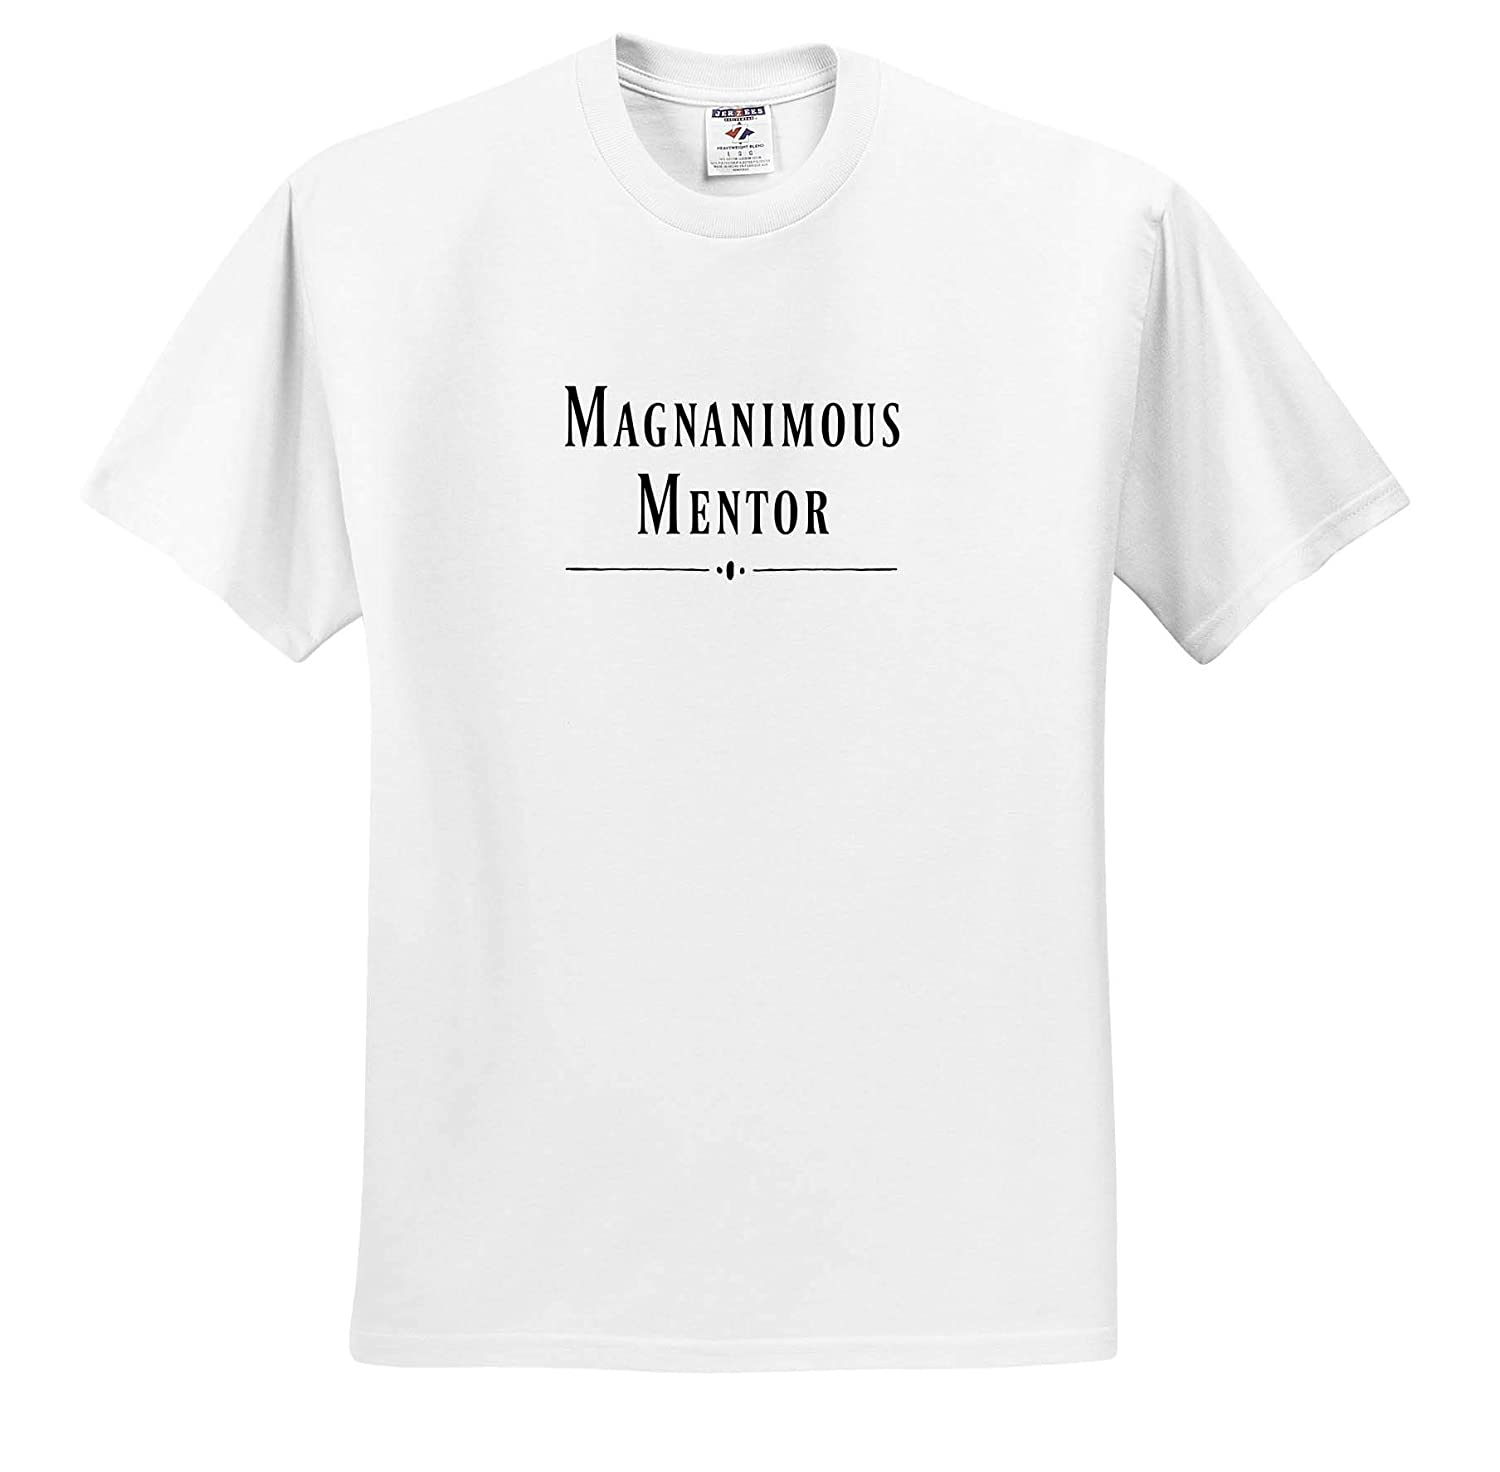 3dRose Carrie Merchant Image Adult T-Shirt XL Image of Magnanimous Mentor ts/_309549